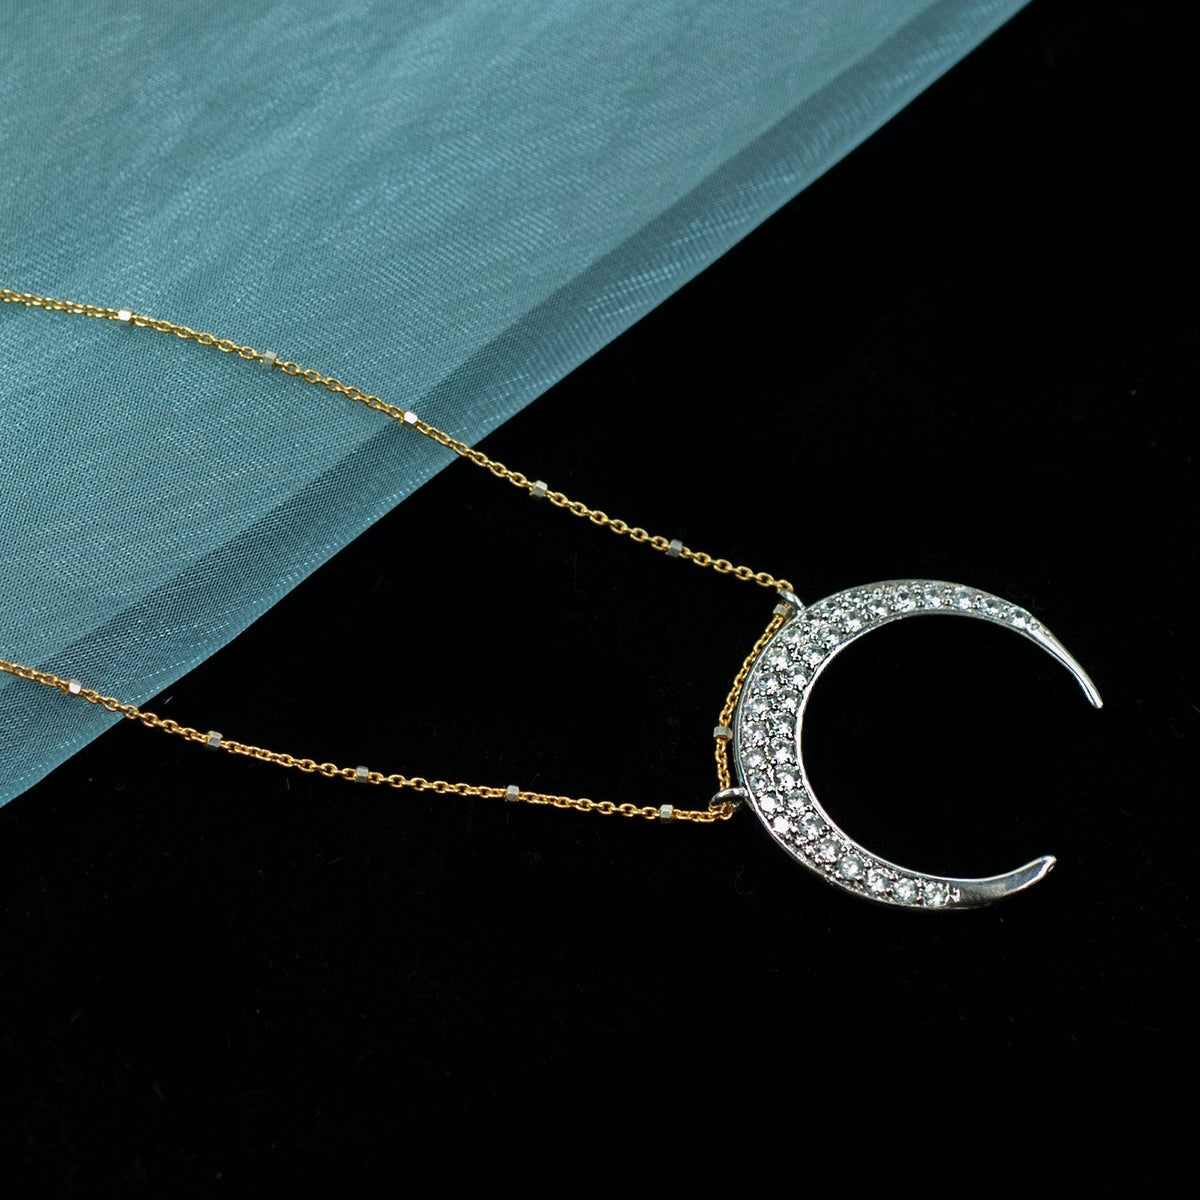 Inverted Crescent Moon Necklace N1705 - Sweet Romance Wholesale